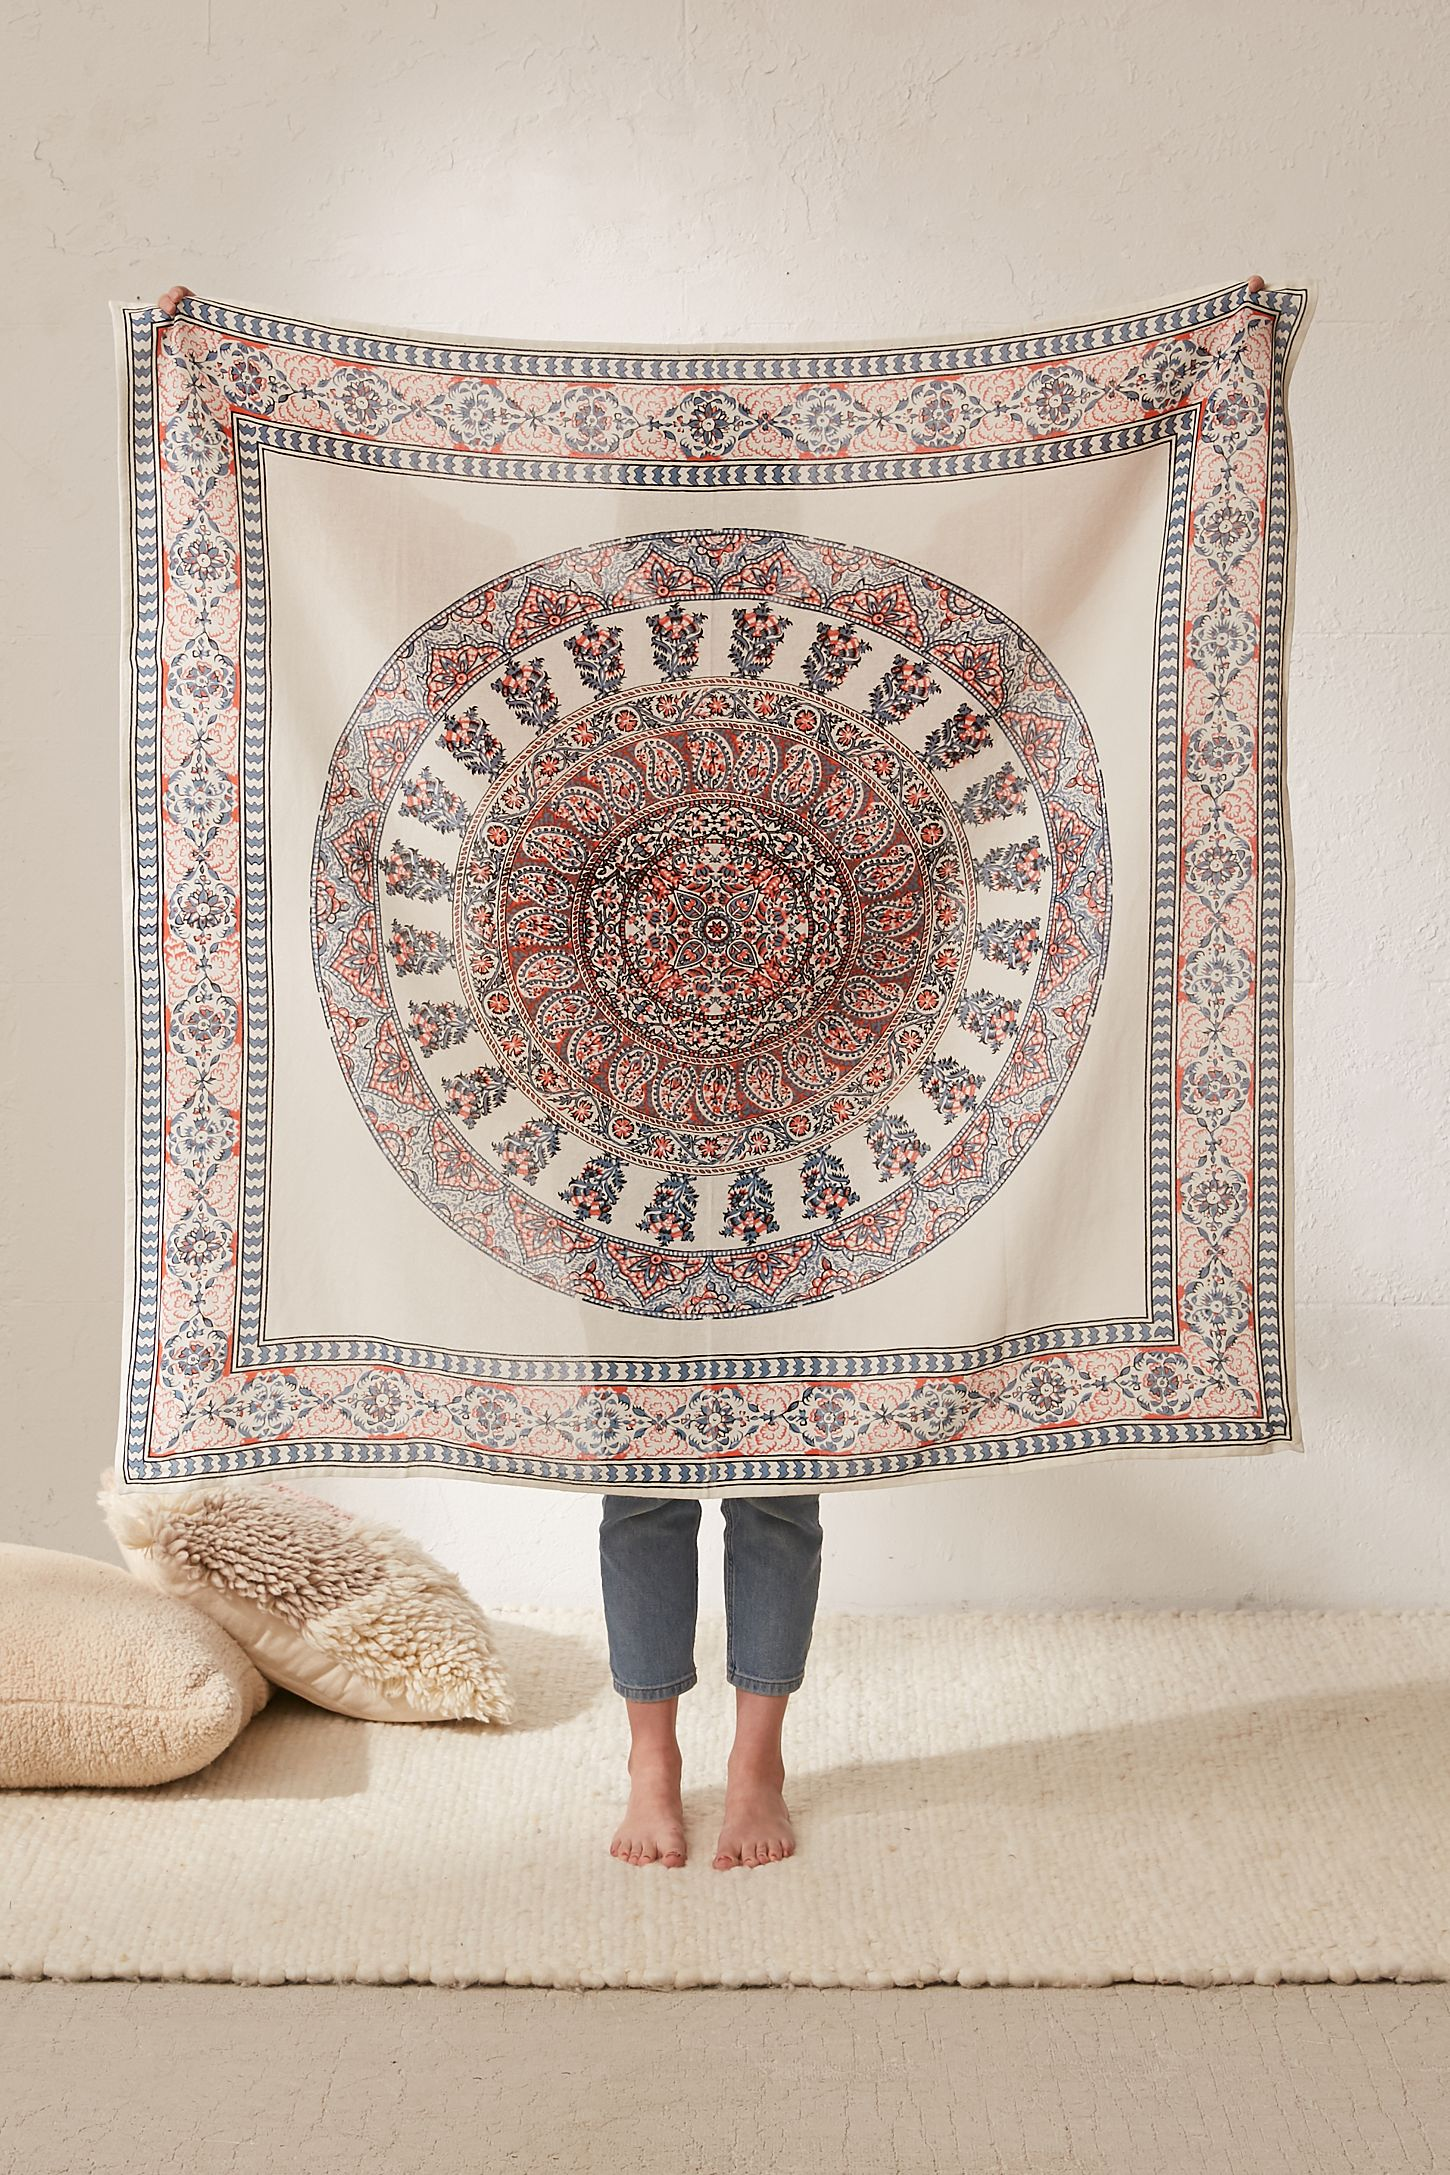 magical jacket mala pillow everythingbeauty boots paisley thinking urban medallion info fabric outfitters tapestry